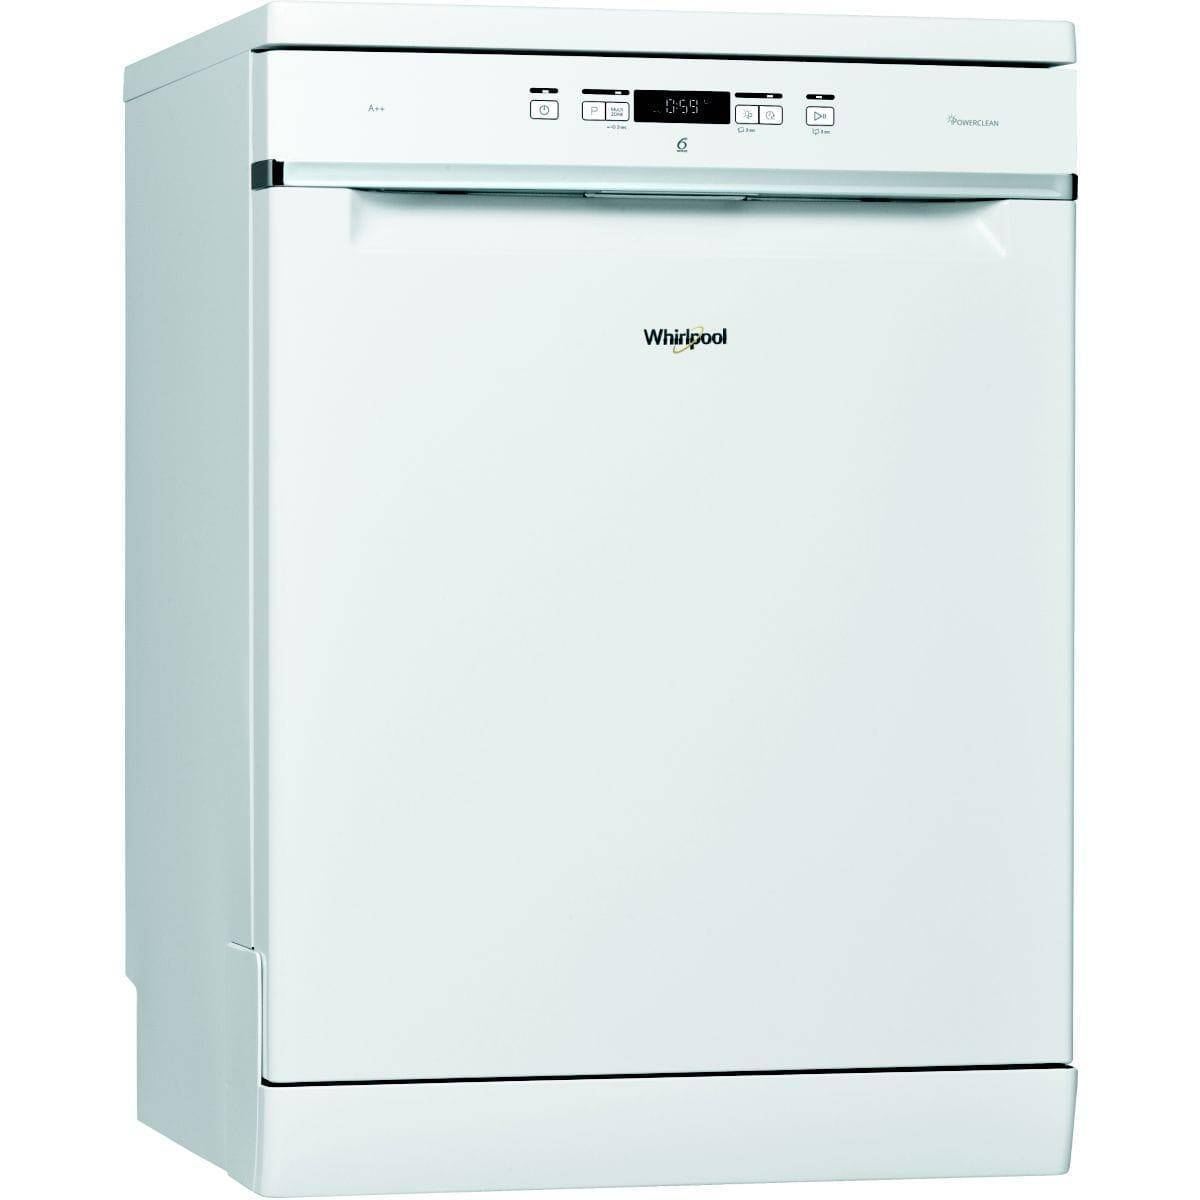 Whirlpool Lave-vaisselle 60 cm WHIRLPOOL WFC 3C26P 14 couverts